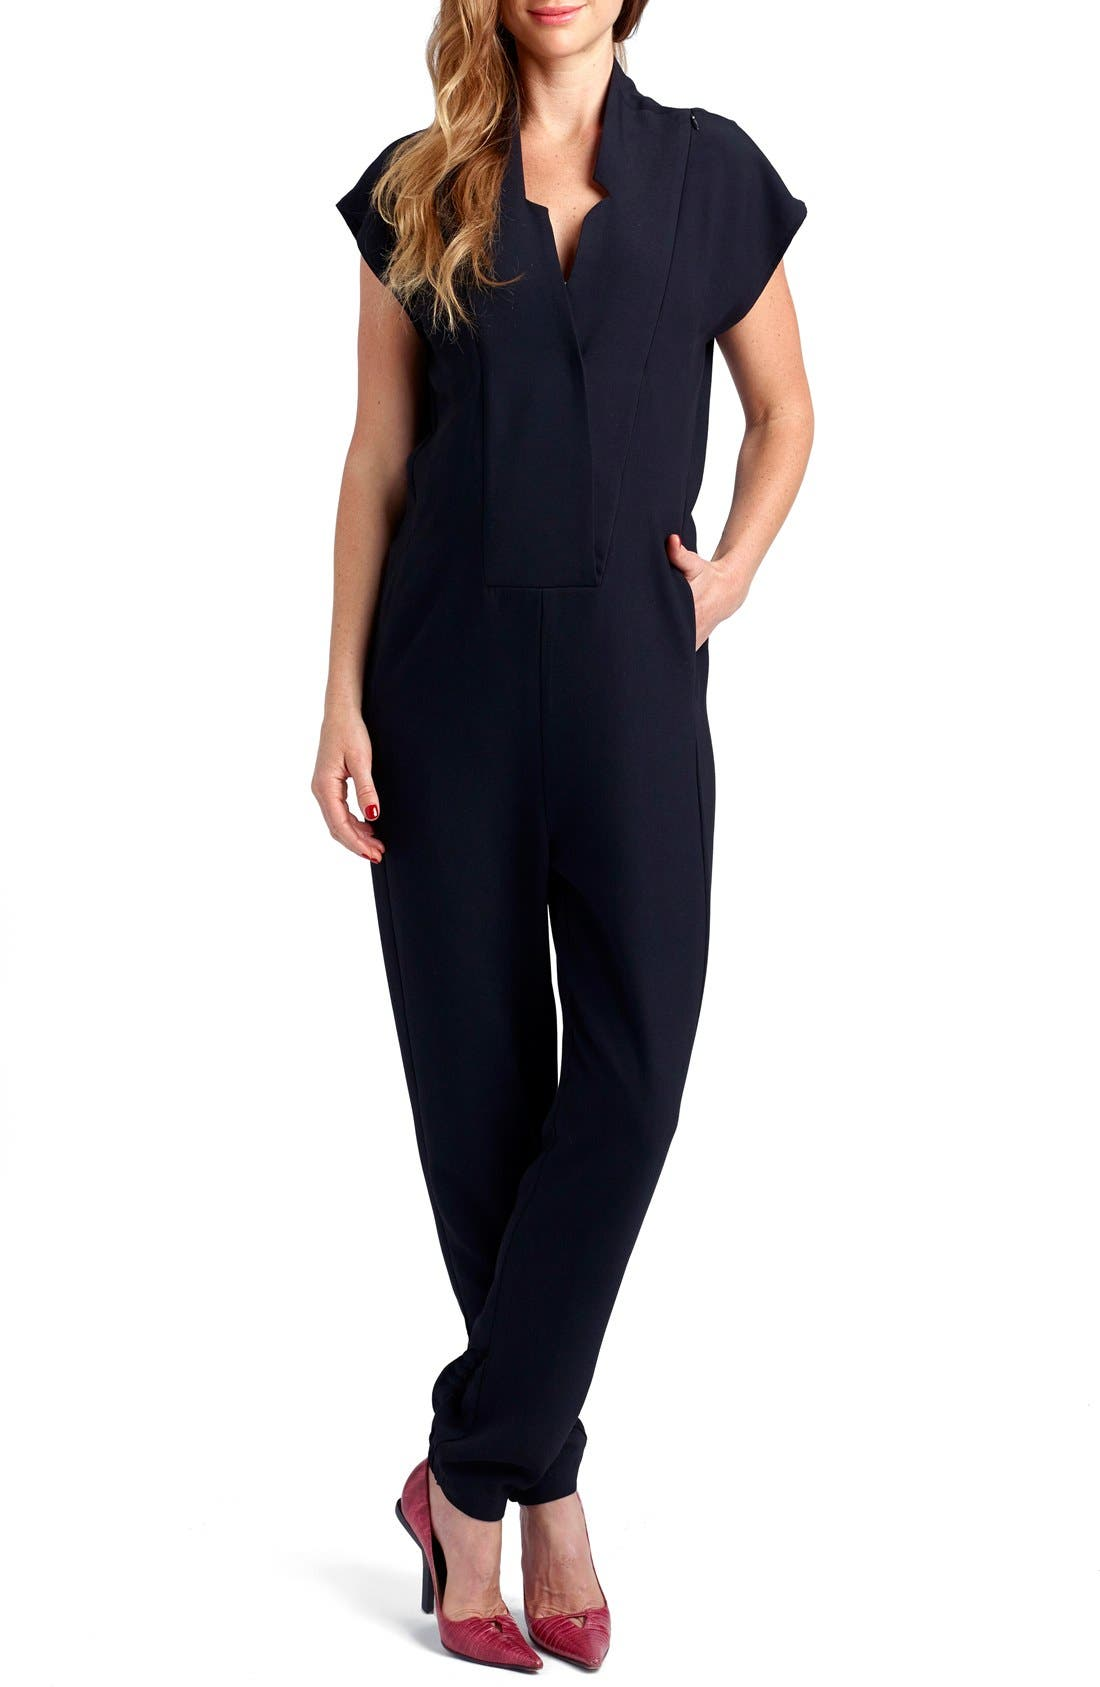 Main Image - Loyal Hana 'Celia' Short Sleeve Maternity Jumpsuit